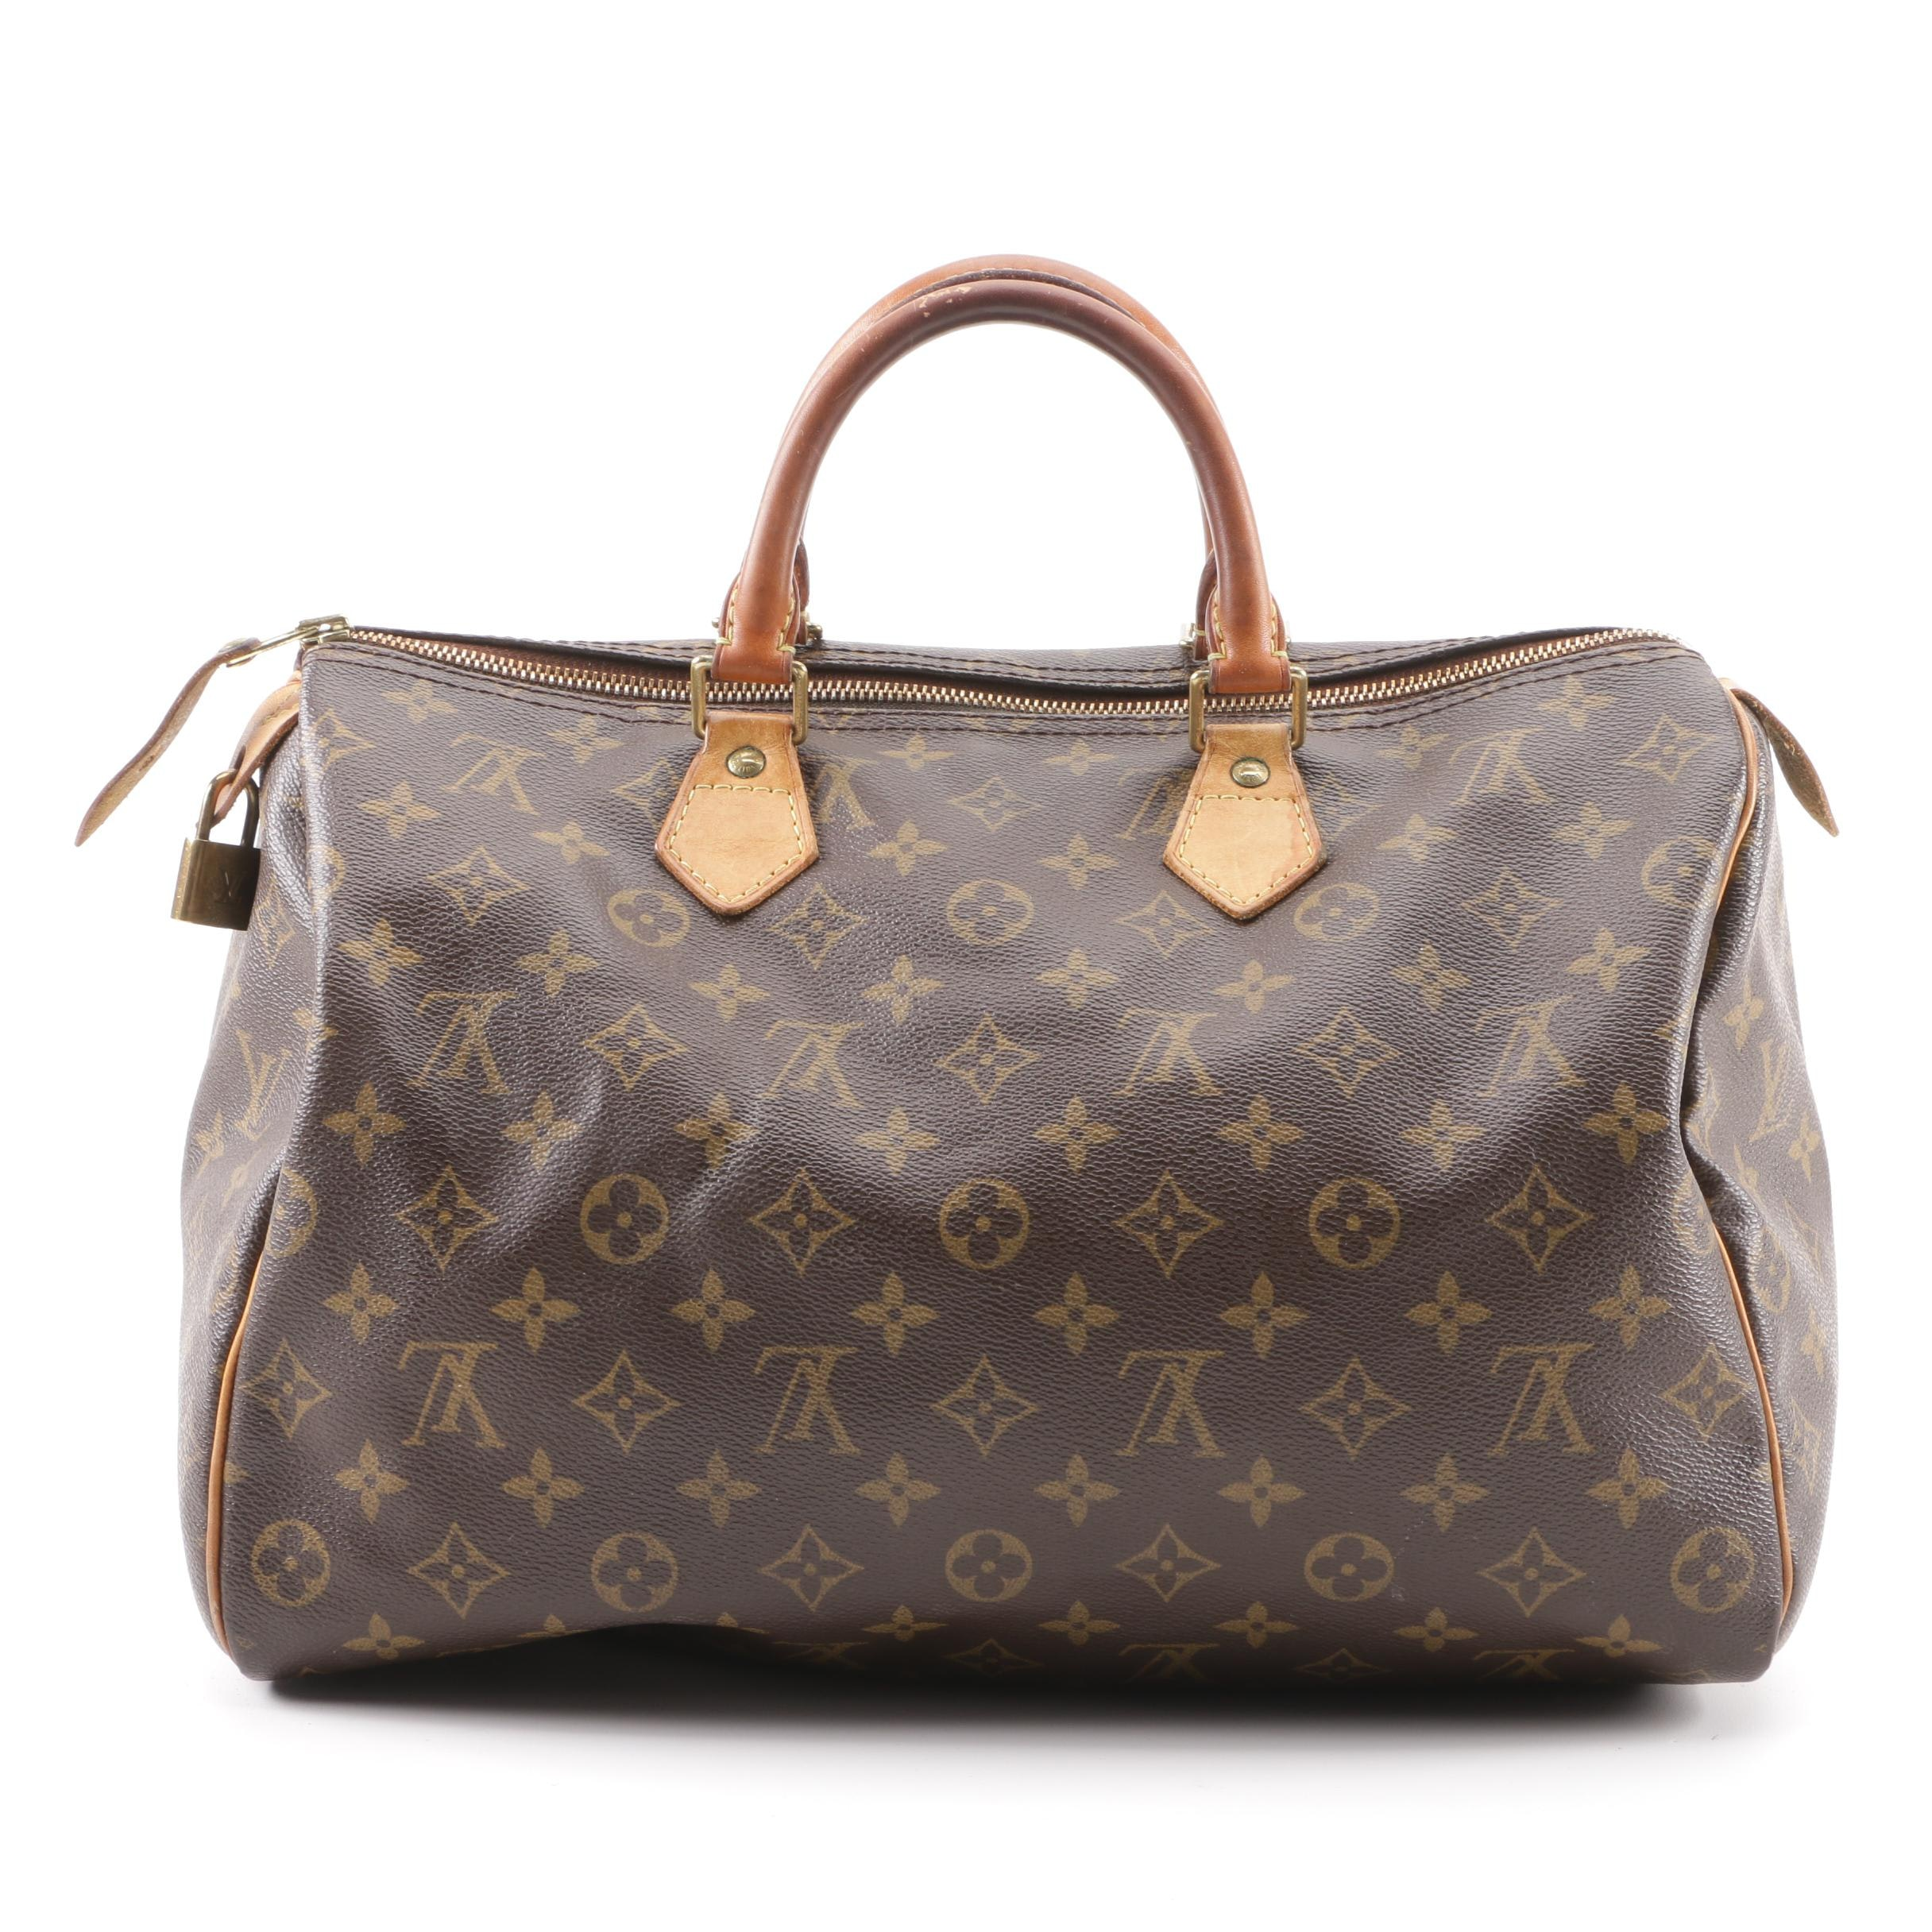 2008 Louis Vuitton Paris Monogram Canvas Speedy Bandouliere 35 Bag